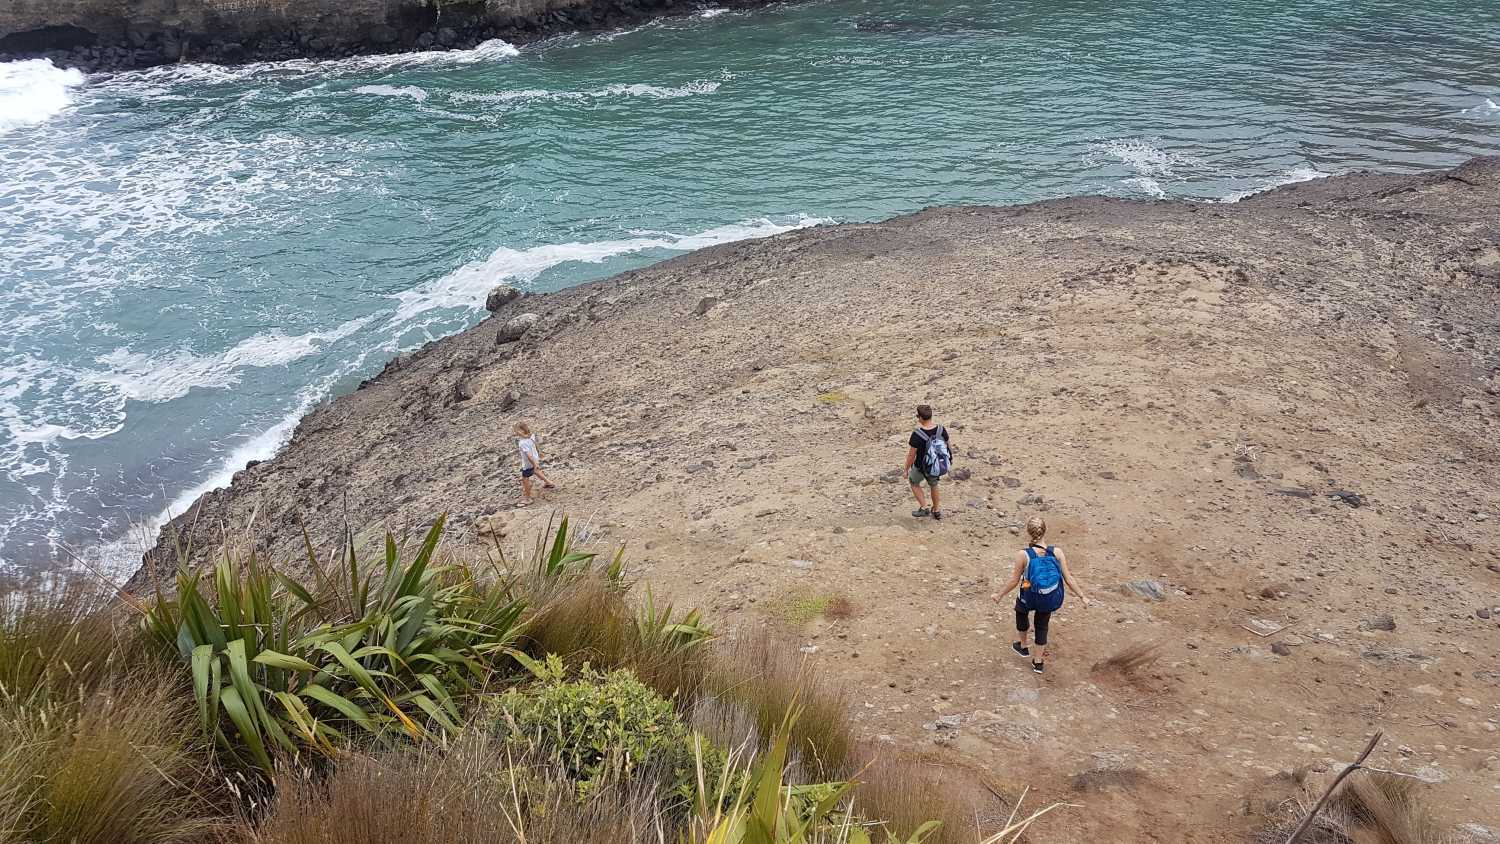 Group explores black sand beach at Piha, Auckland, NZ